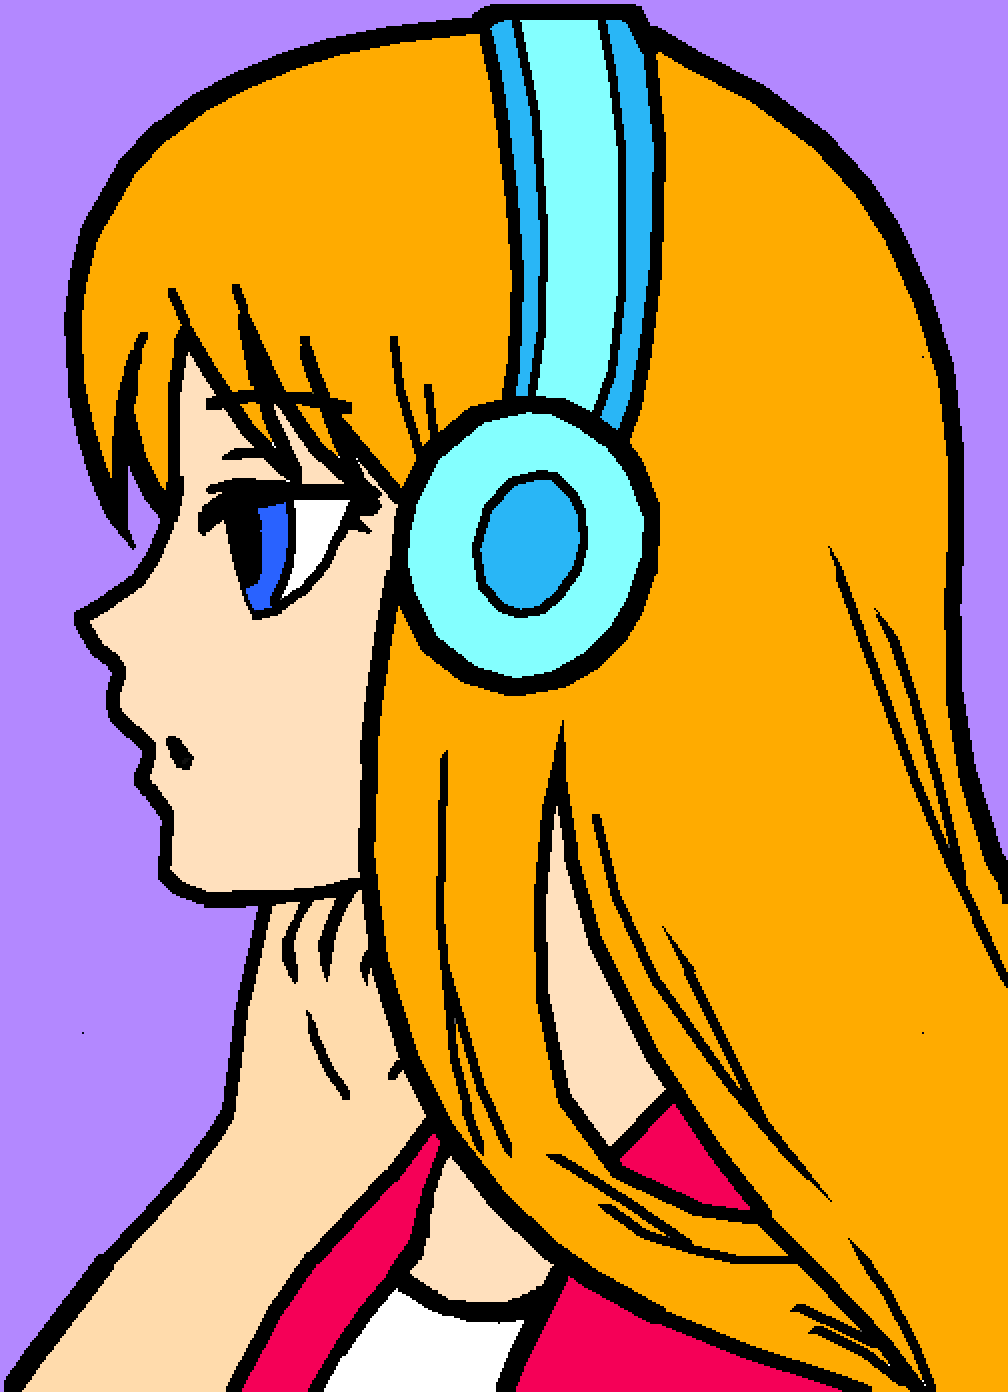 Listening to music by ilovehorses123